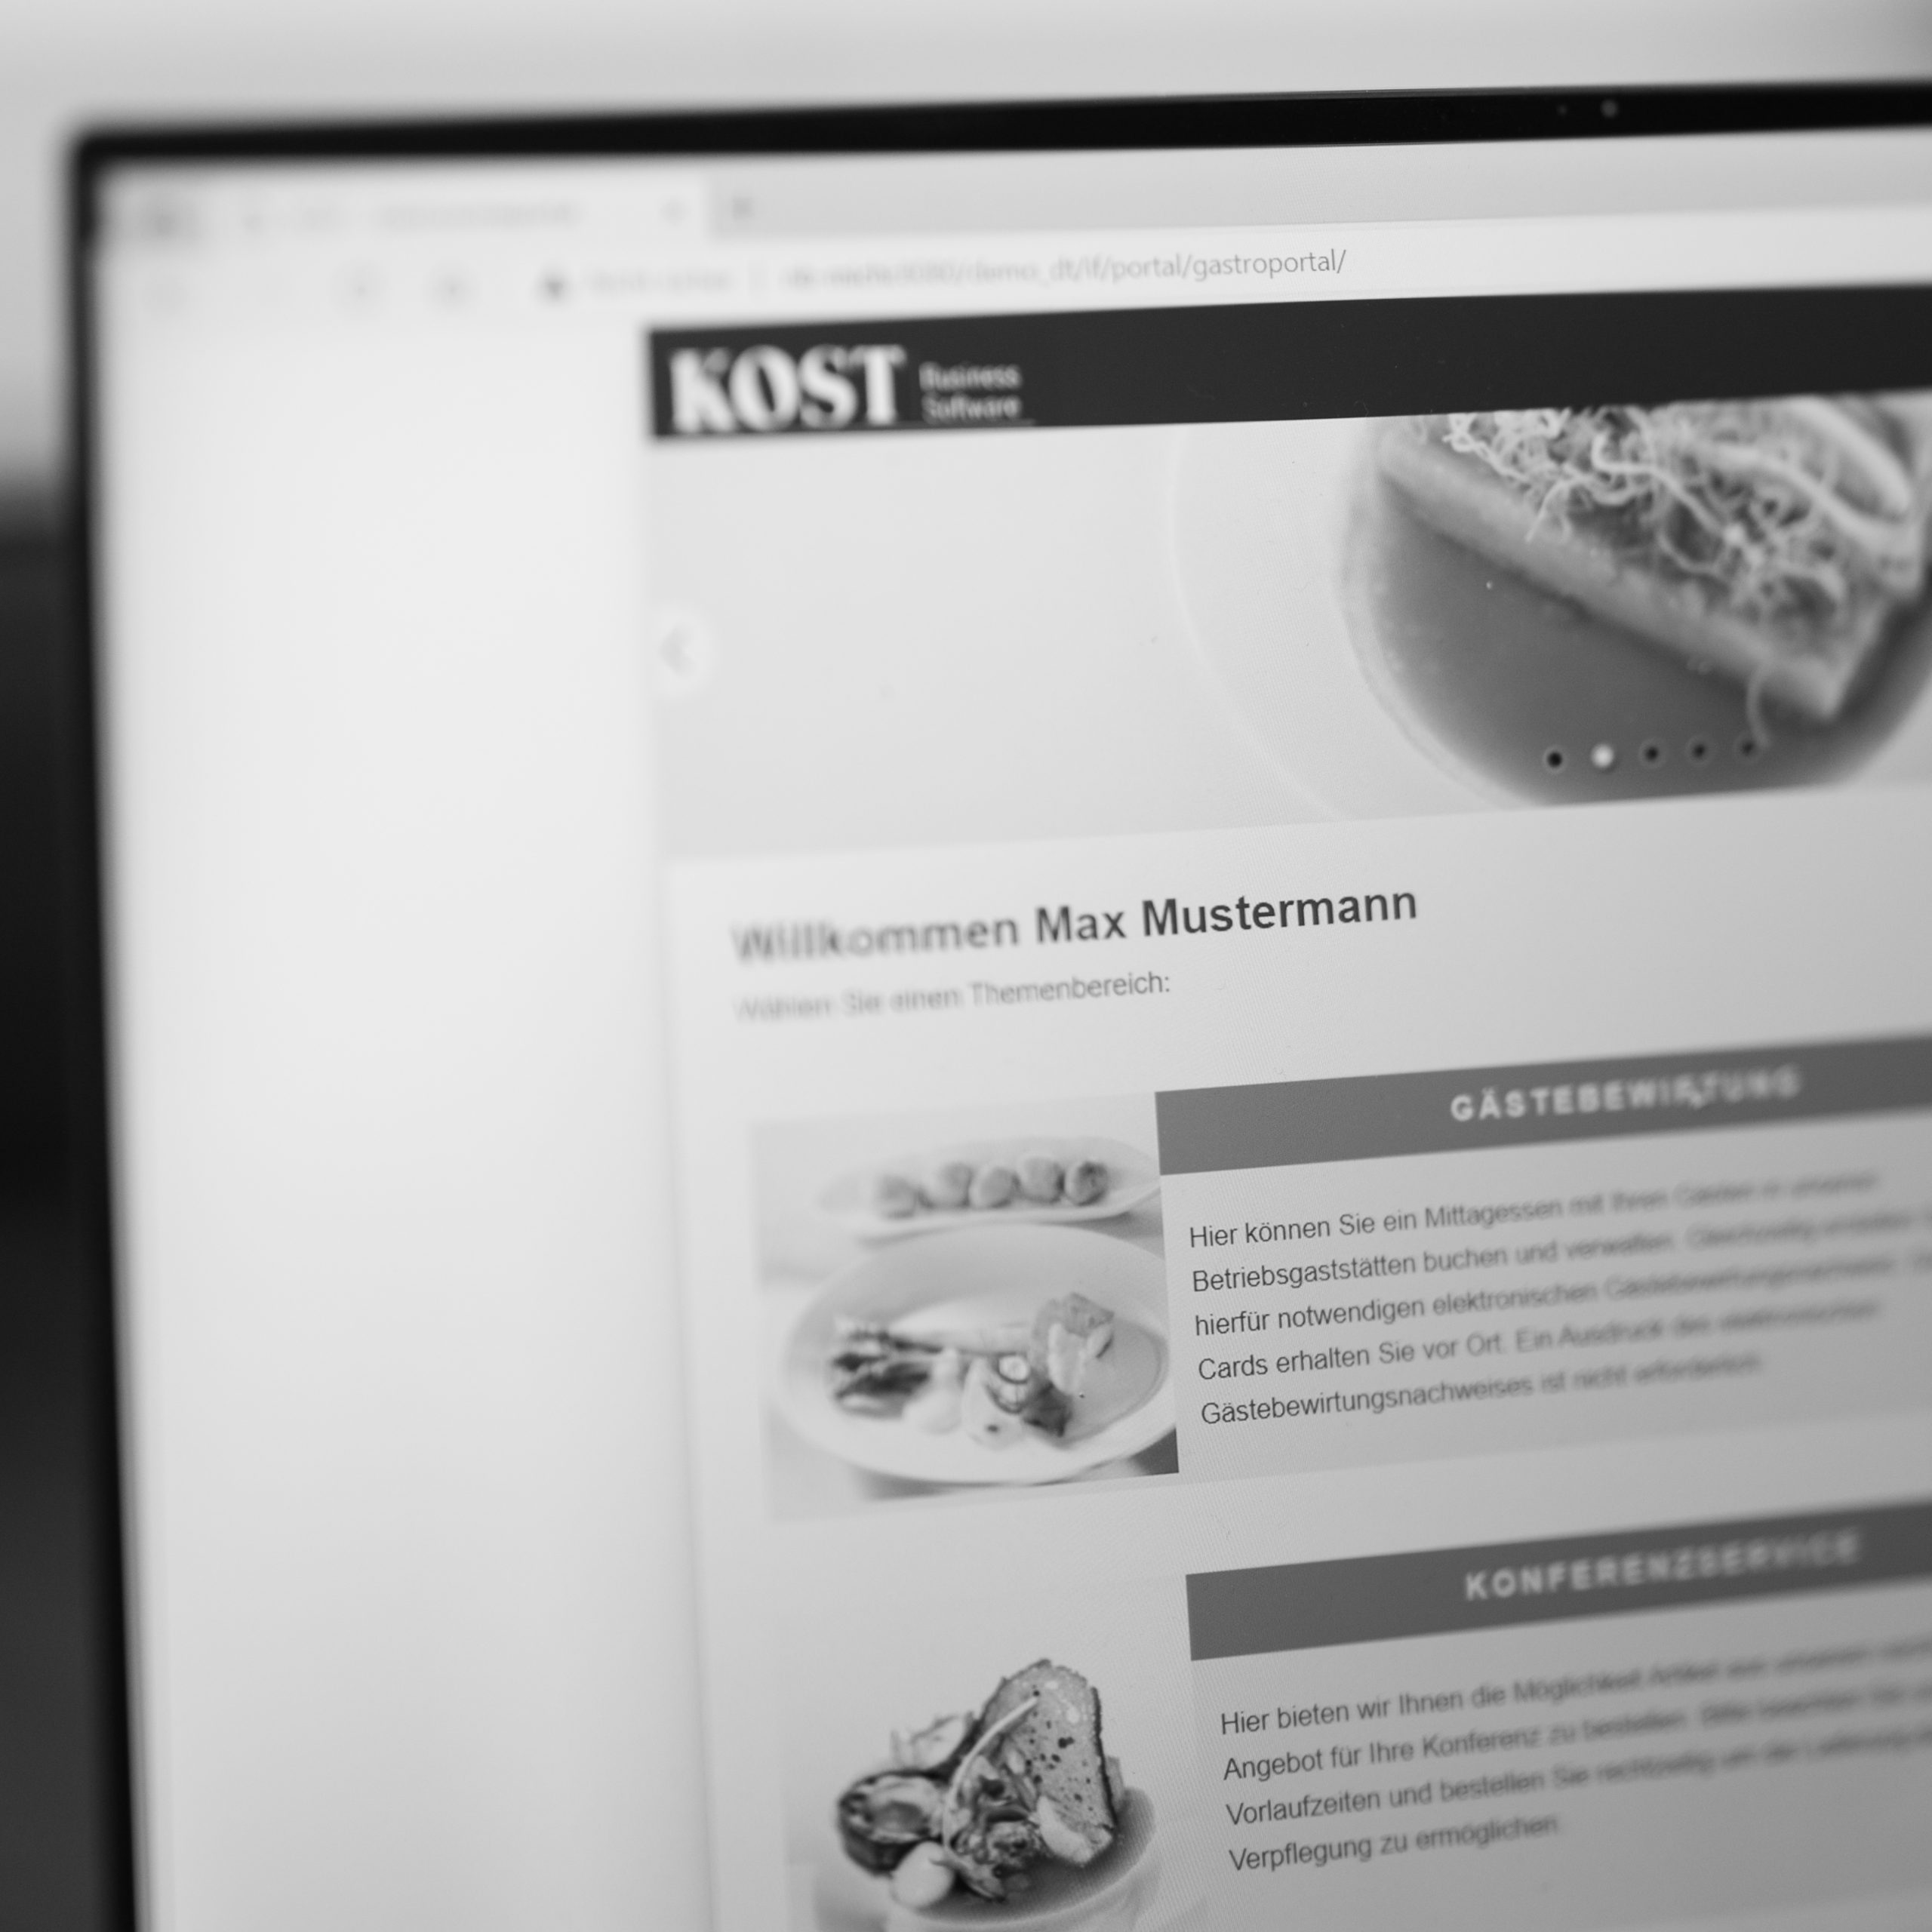 KOST Business Software | WEB11 Web1b 1 scaled 1